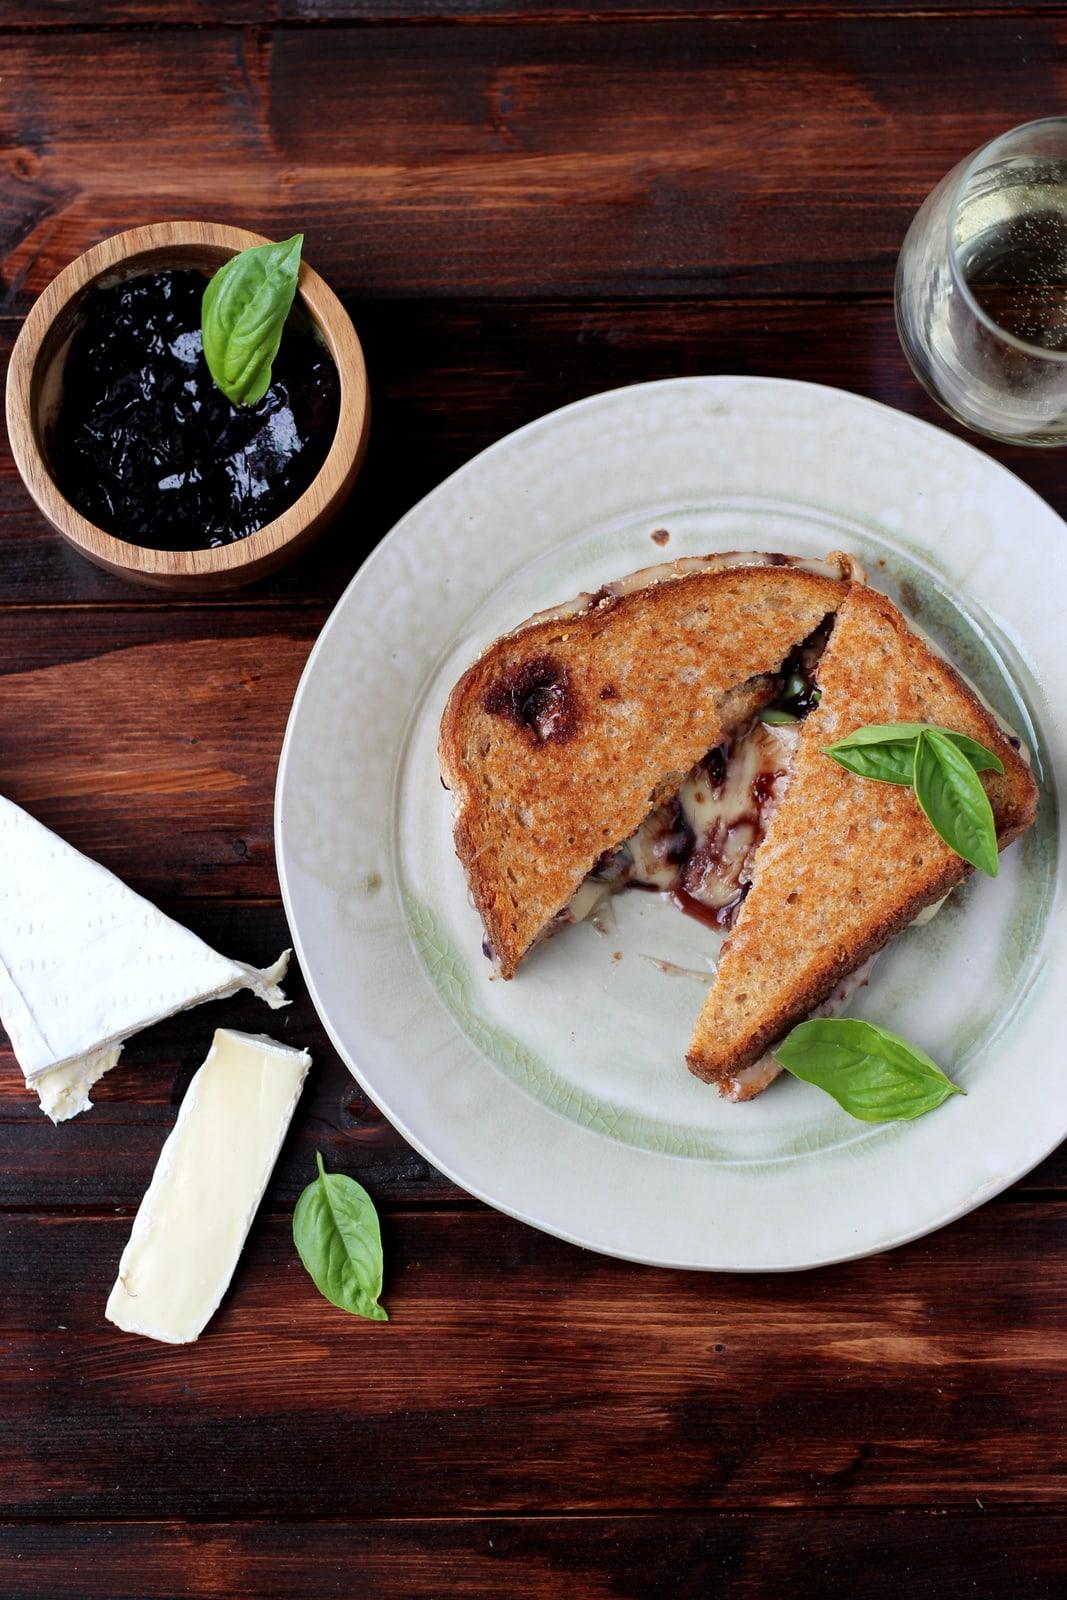 Baked Brie Grilled Cheese Sandwich with Sweet Basil - thewoodenskillet.com #grilledcheese #meatless